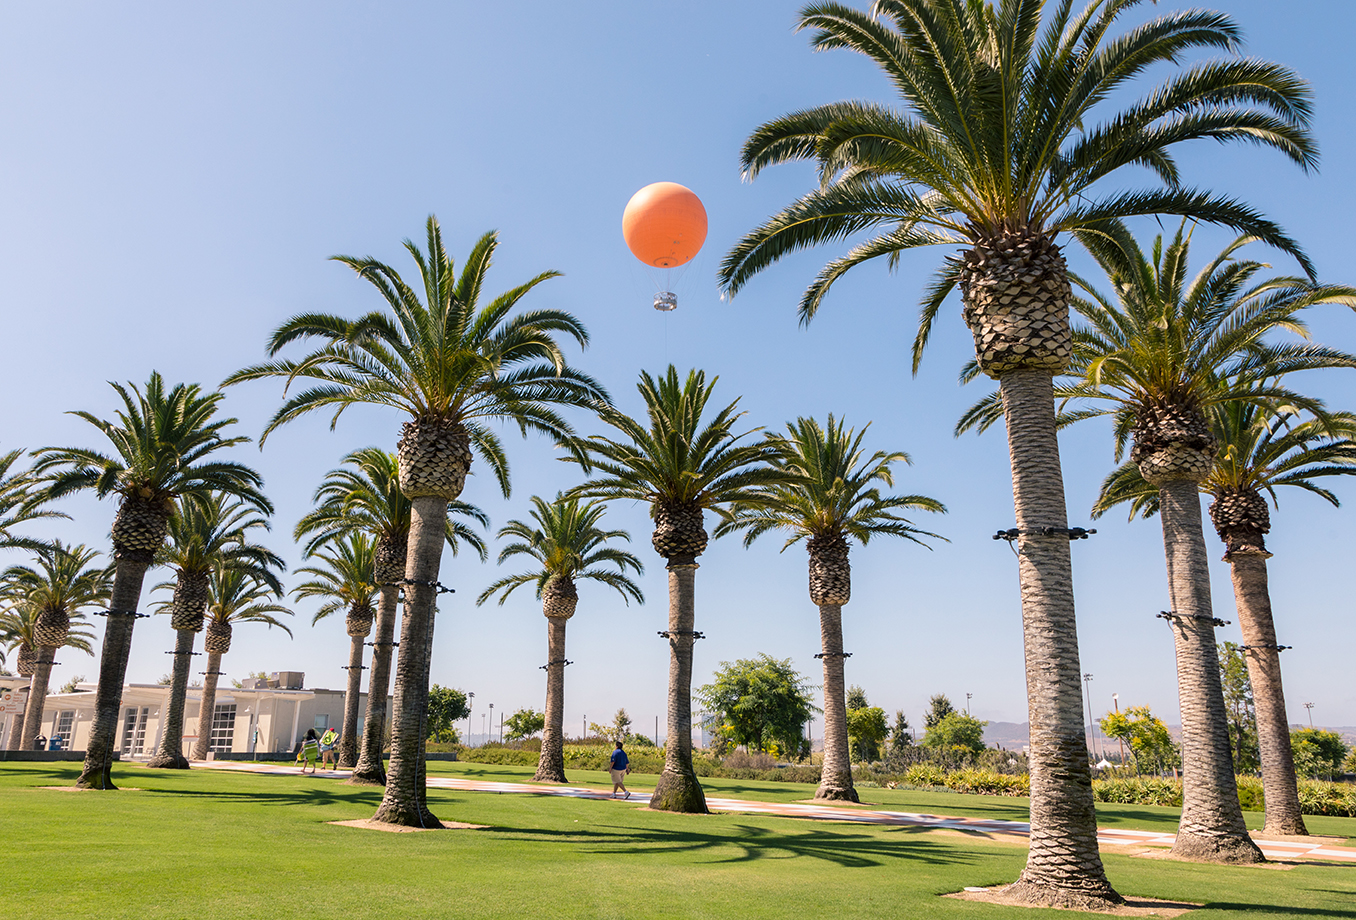 Best of Orange County 2020: Irvine Voted Best City to Live In Photo - Click Here to See